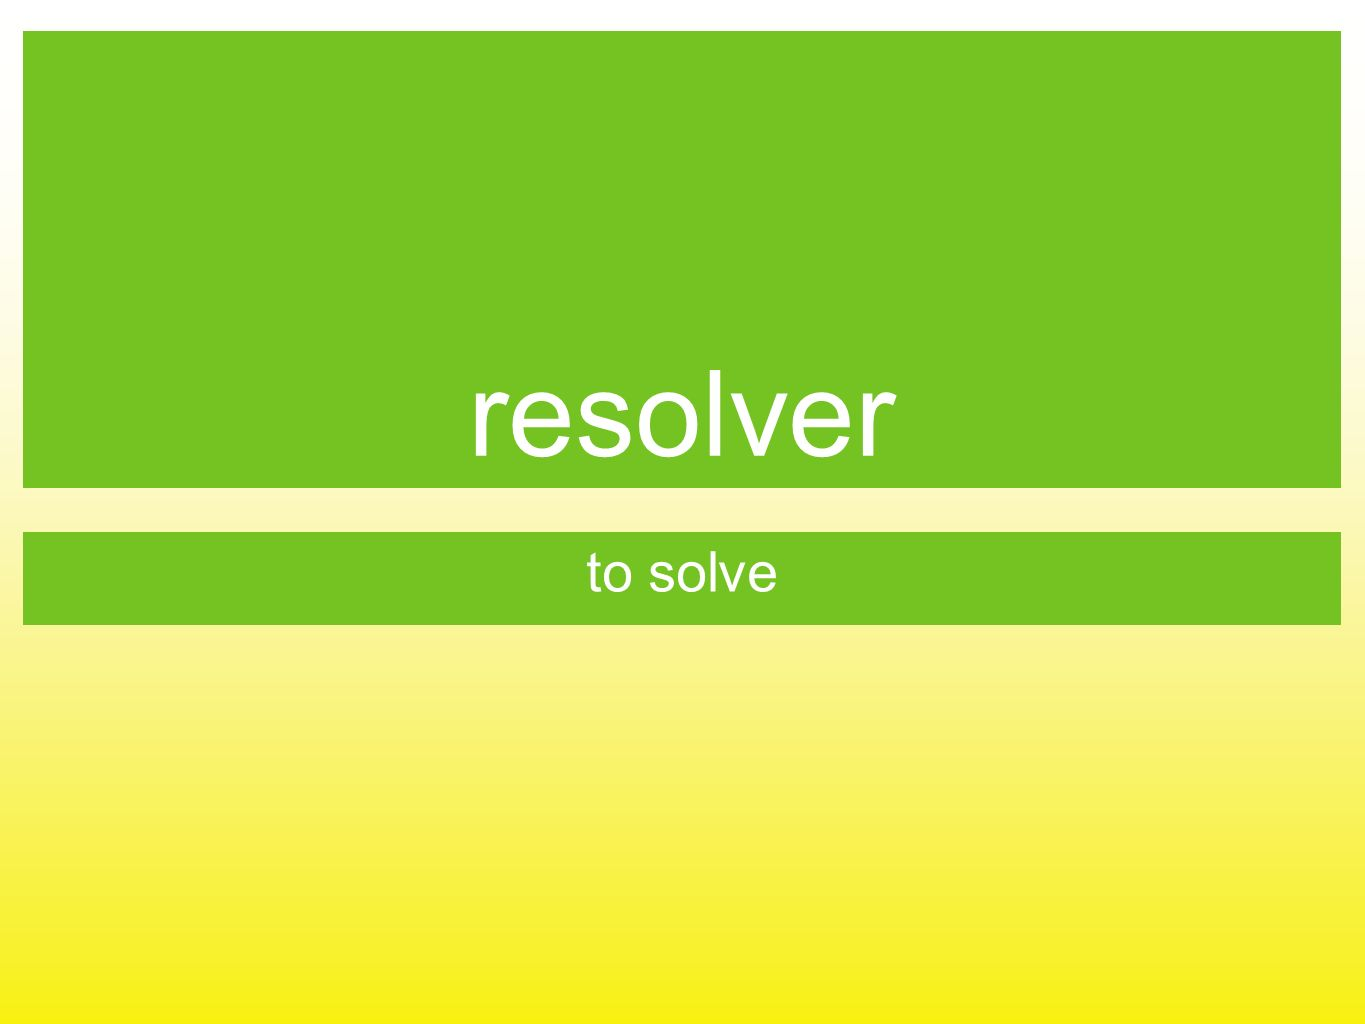 resolver to solve